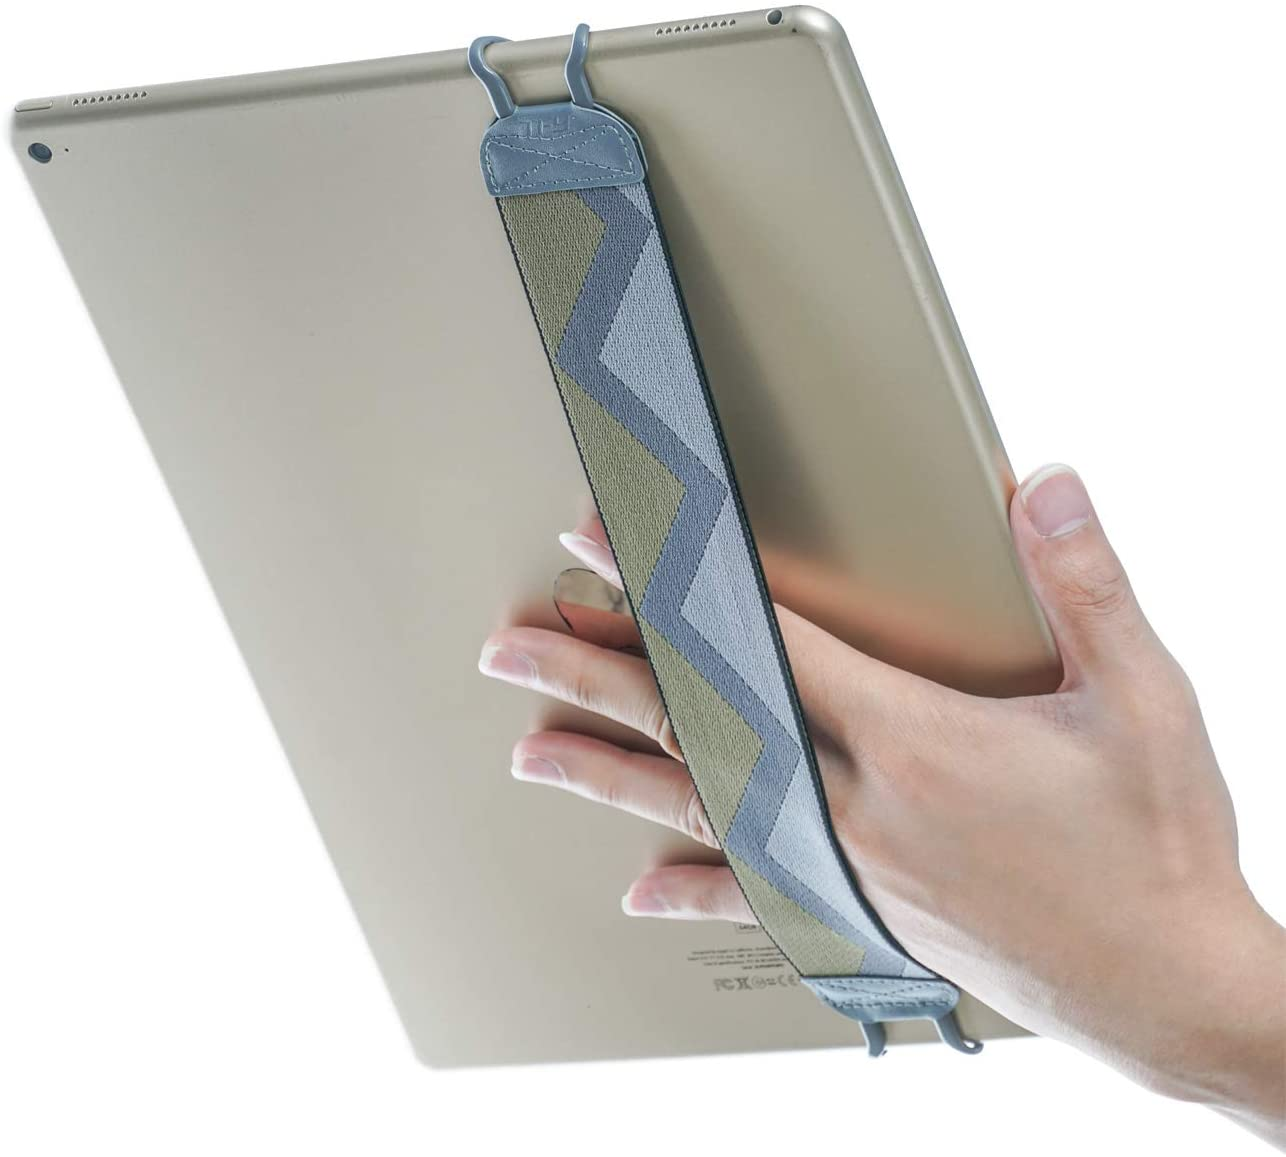 TFY Hand Strap Holder for 12.9-inch iPad Pro